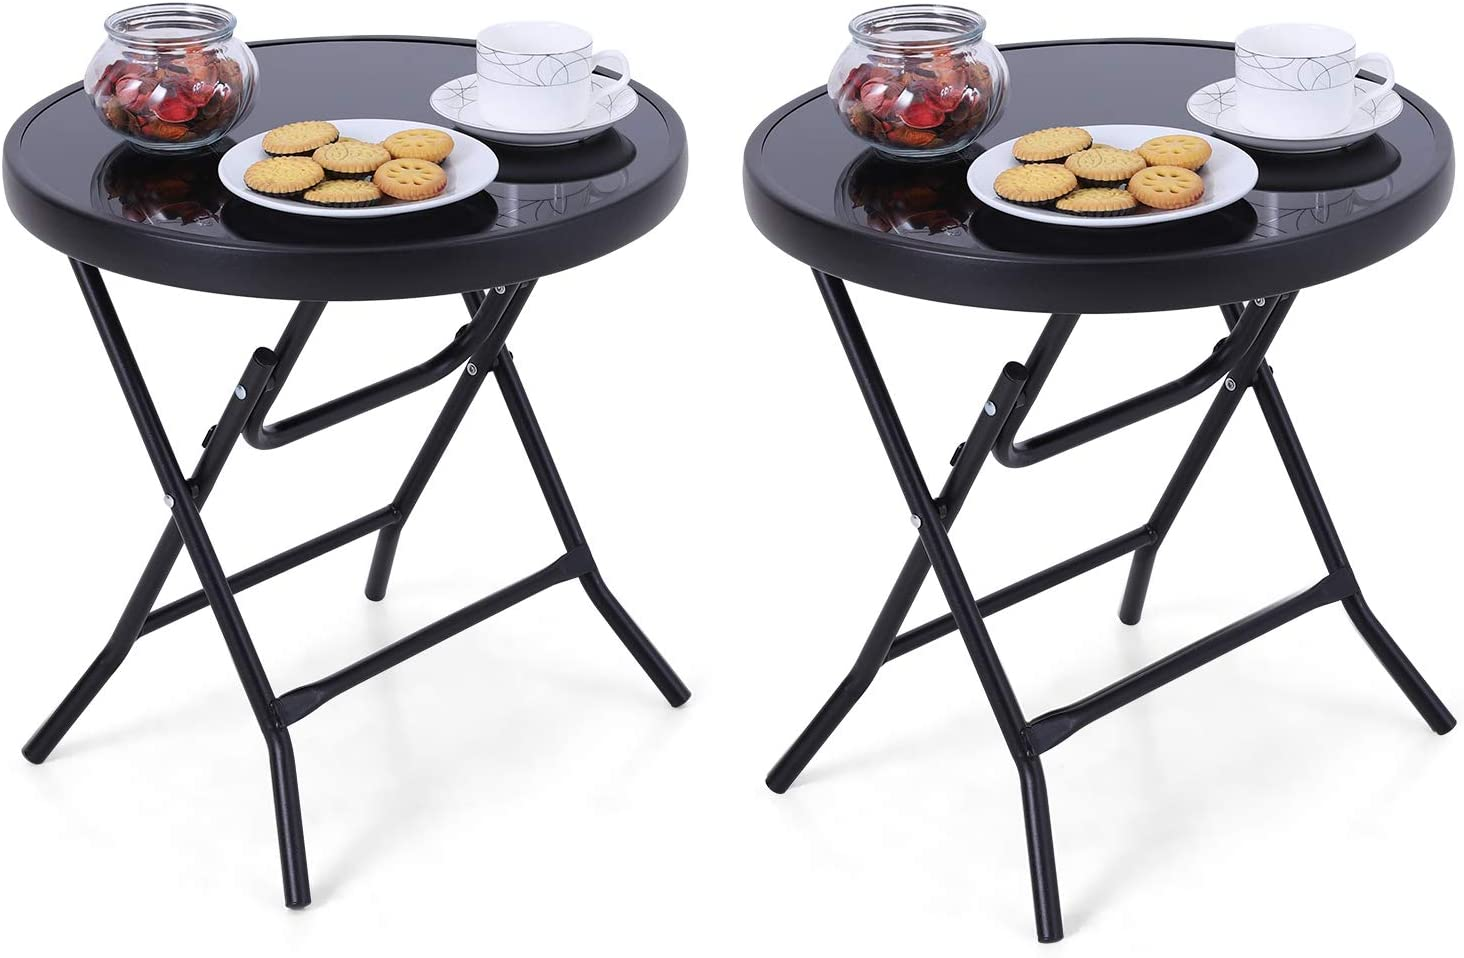 18 inches Black Sophia /& William Patio Folding Side Table Round Set of 2 Printed End Table Small Portable Bistro Coffee Table with Tempered Glass Top and Metal Frame for Outdoor and Indoor